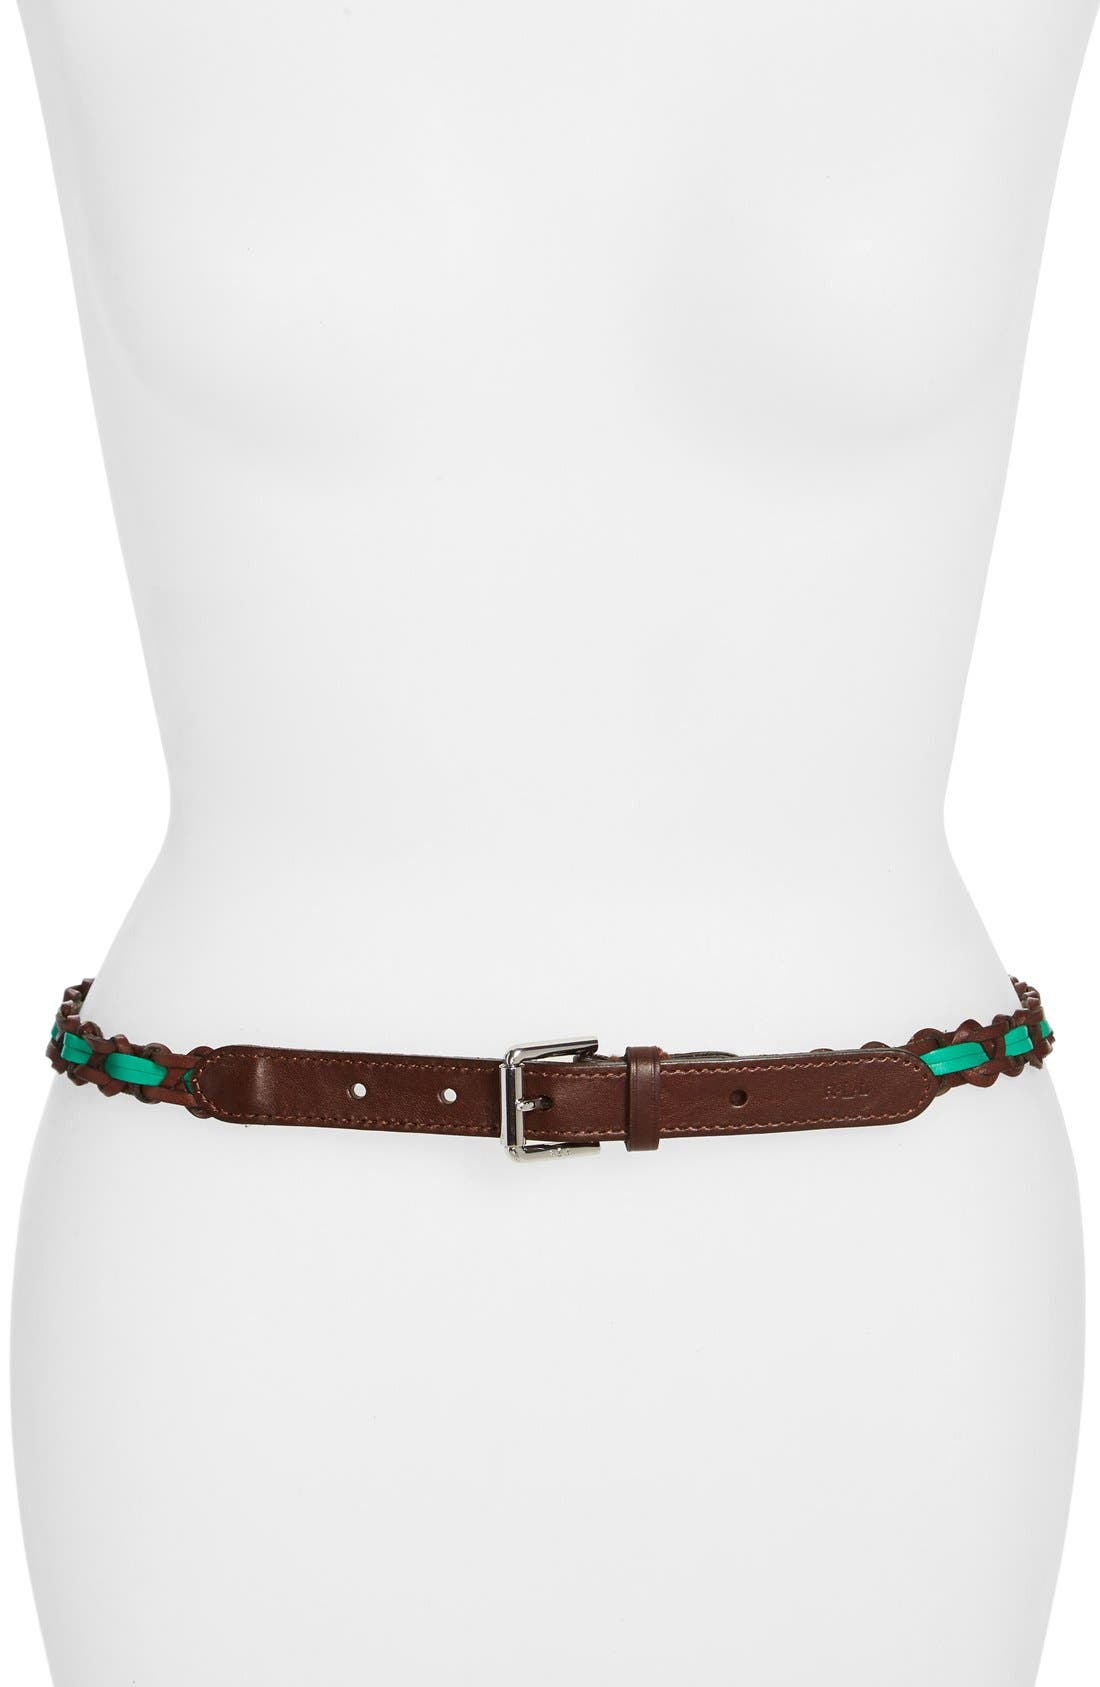 Alternate Image 1 Selected - Lauren Ralph Lauren Braided Leather Belt